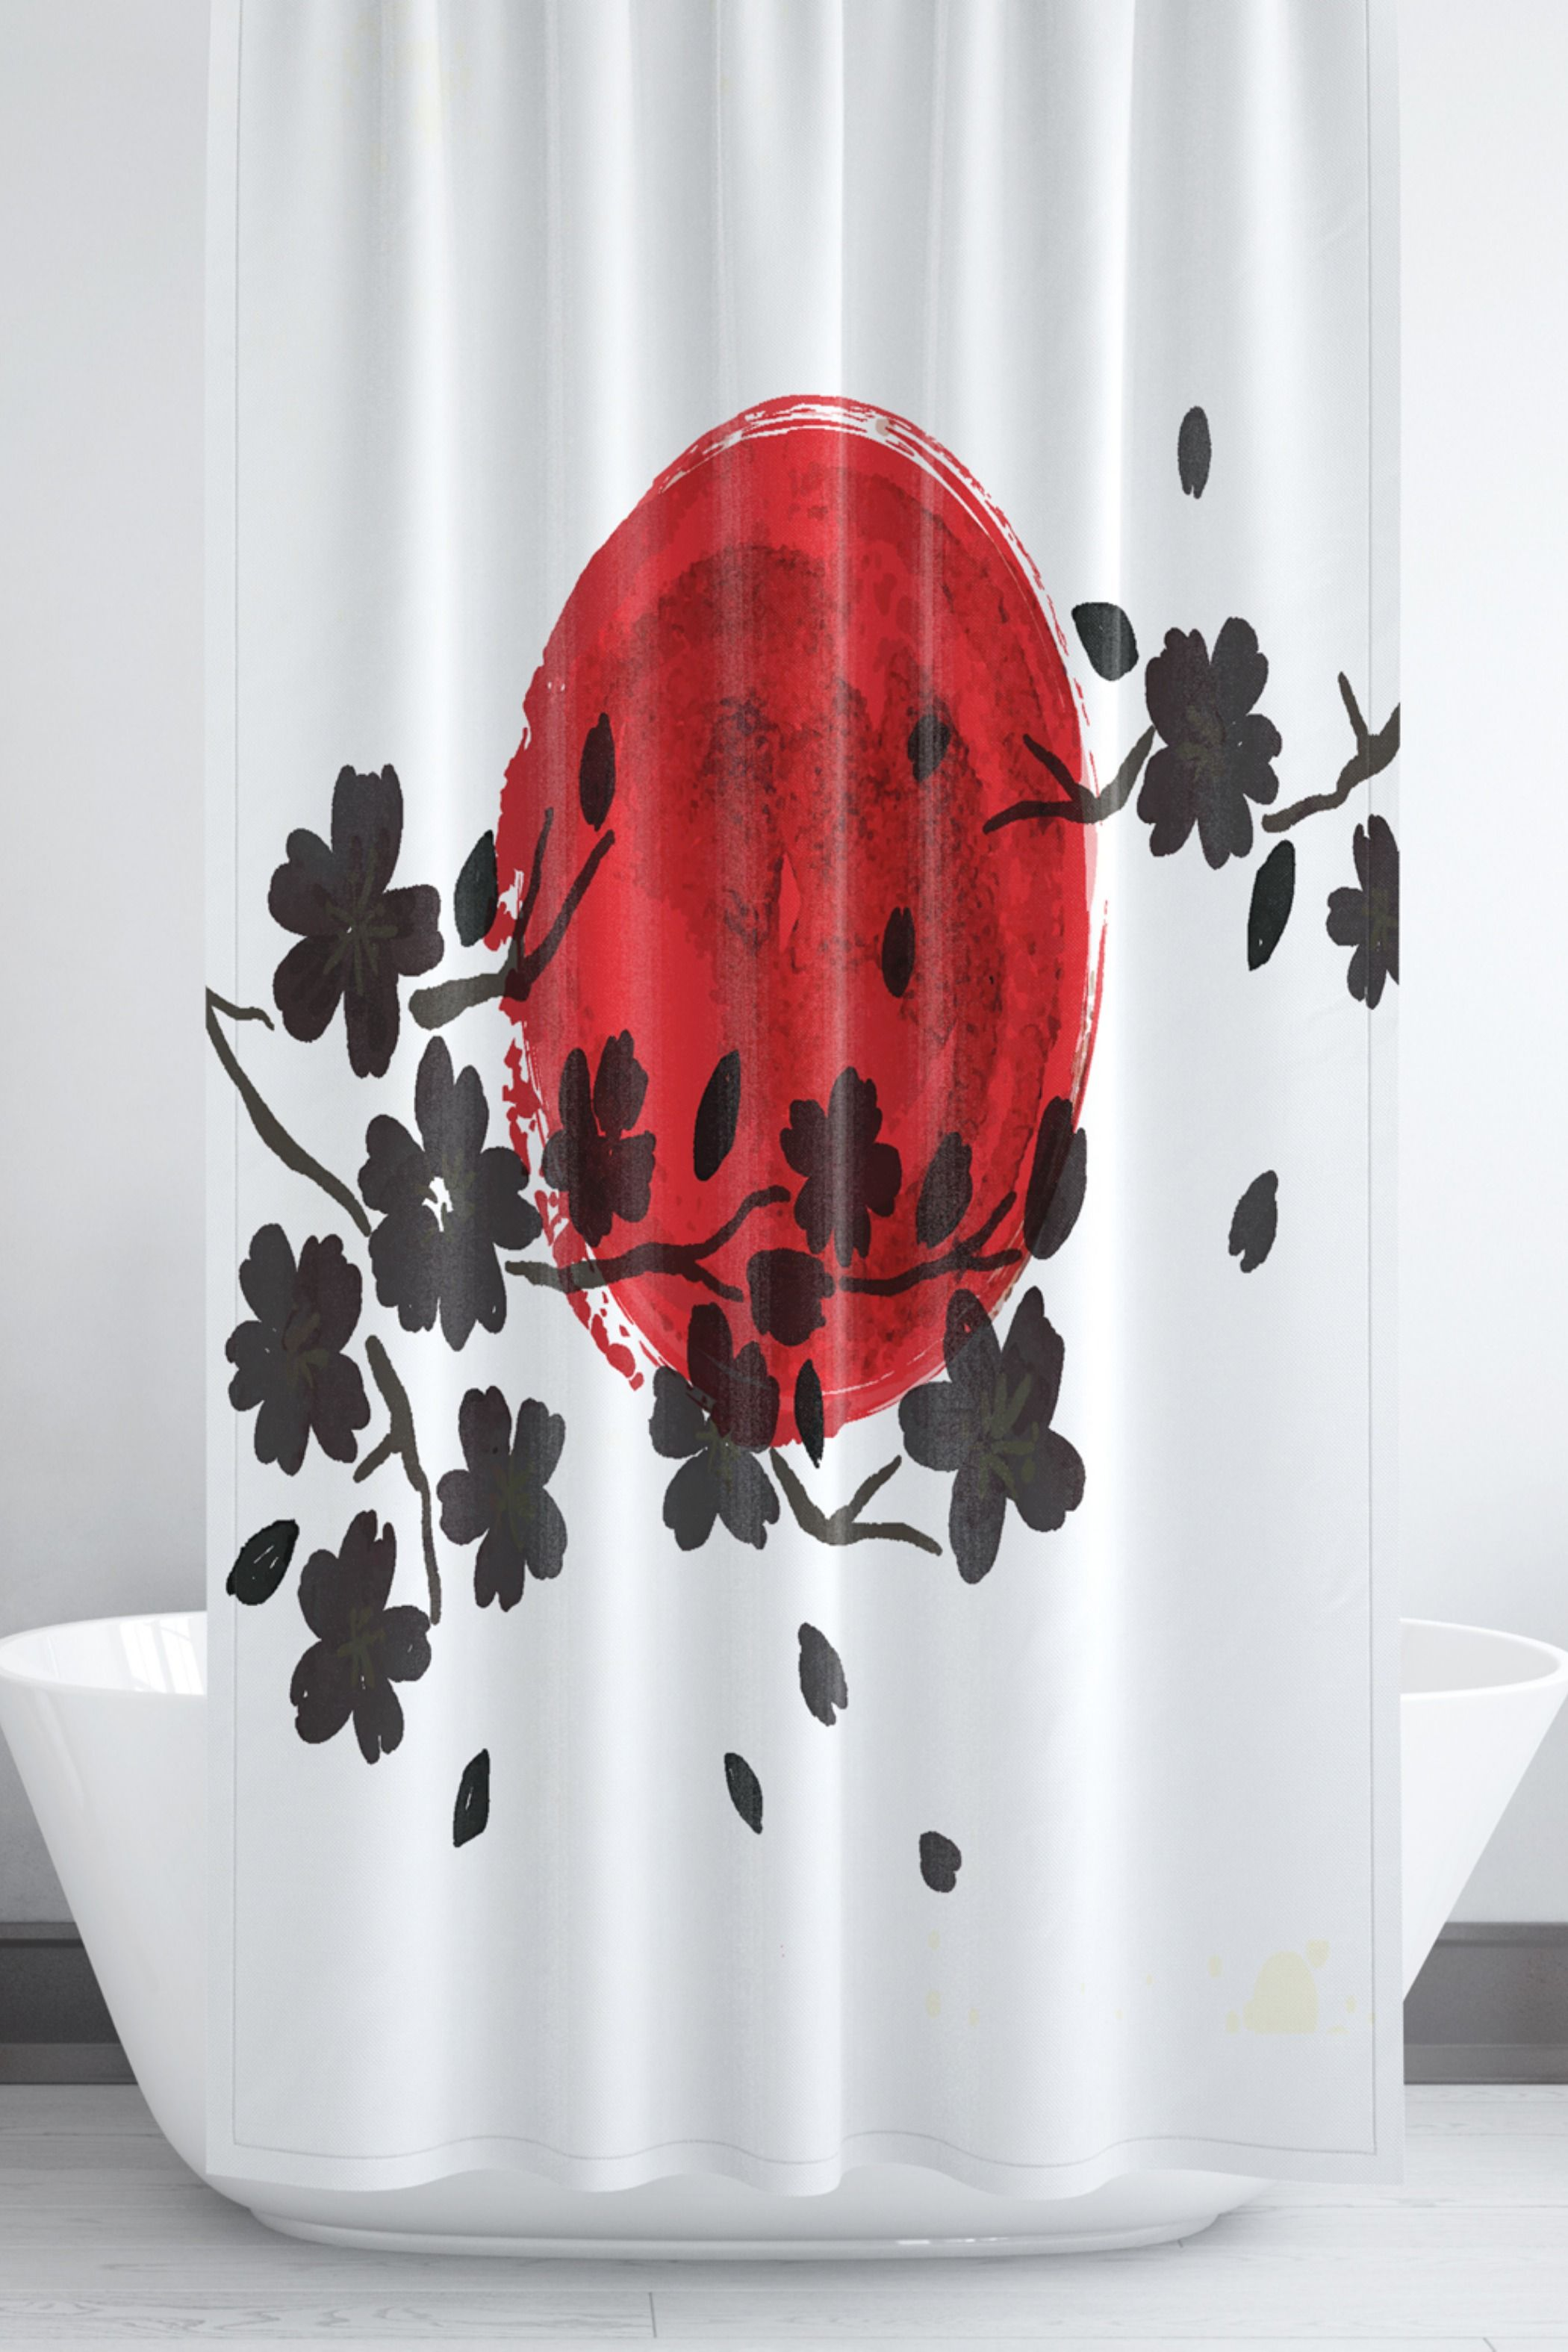 Japanese Shower Curtain In Red Black And White Bathroom Decor